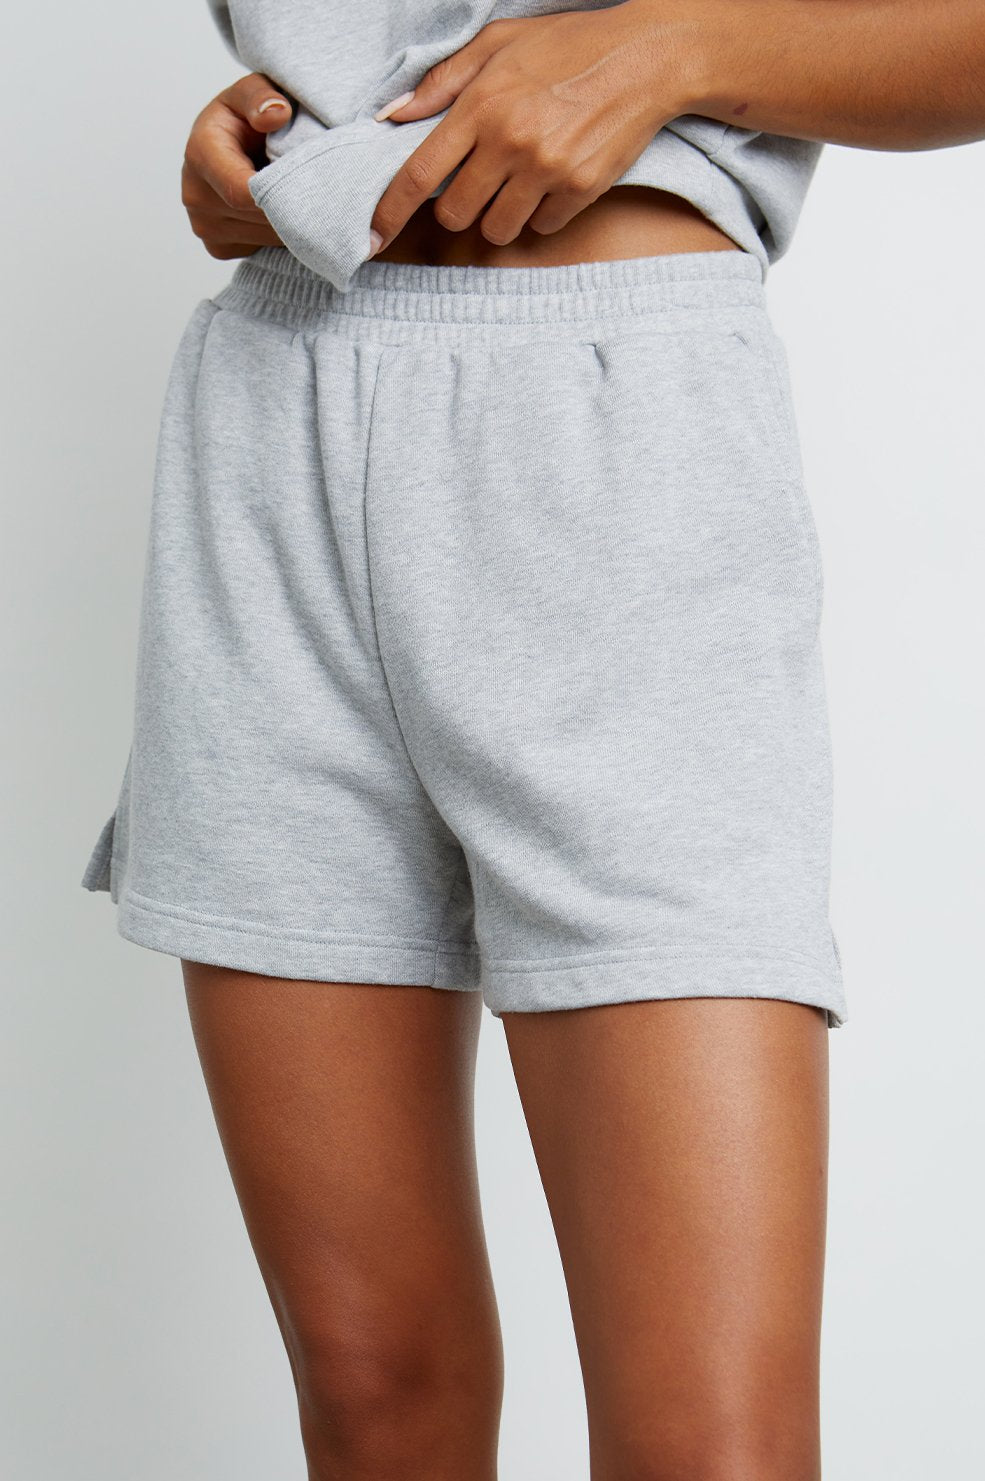 Jane Shorts in Heather Grey